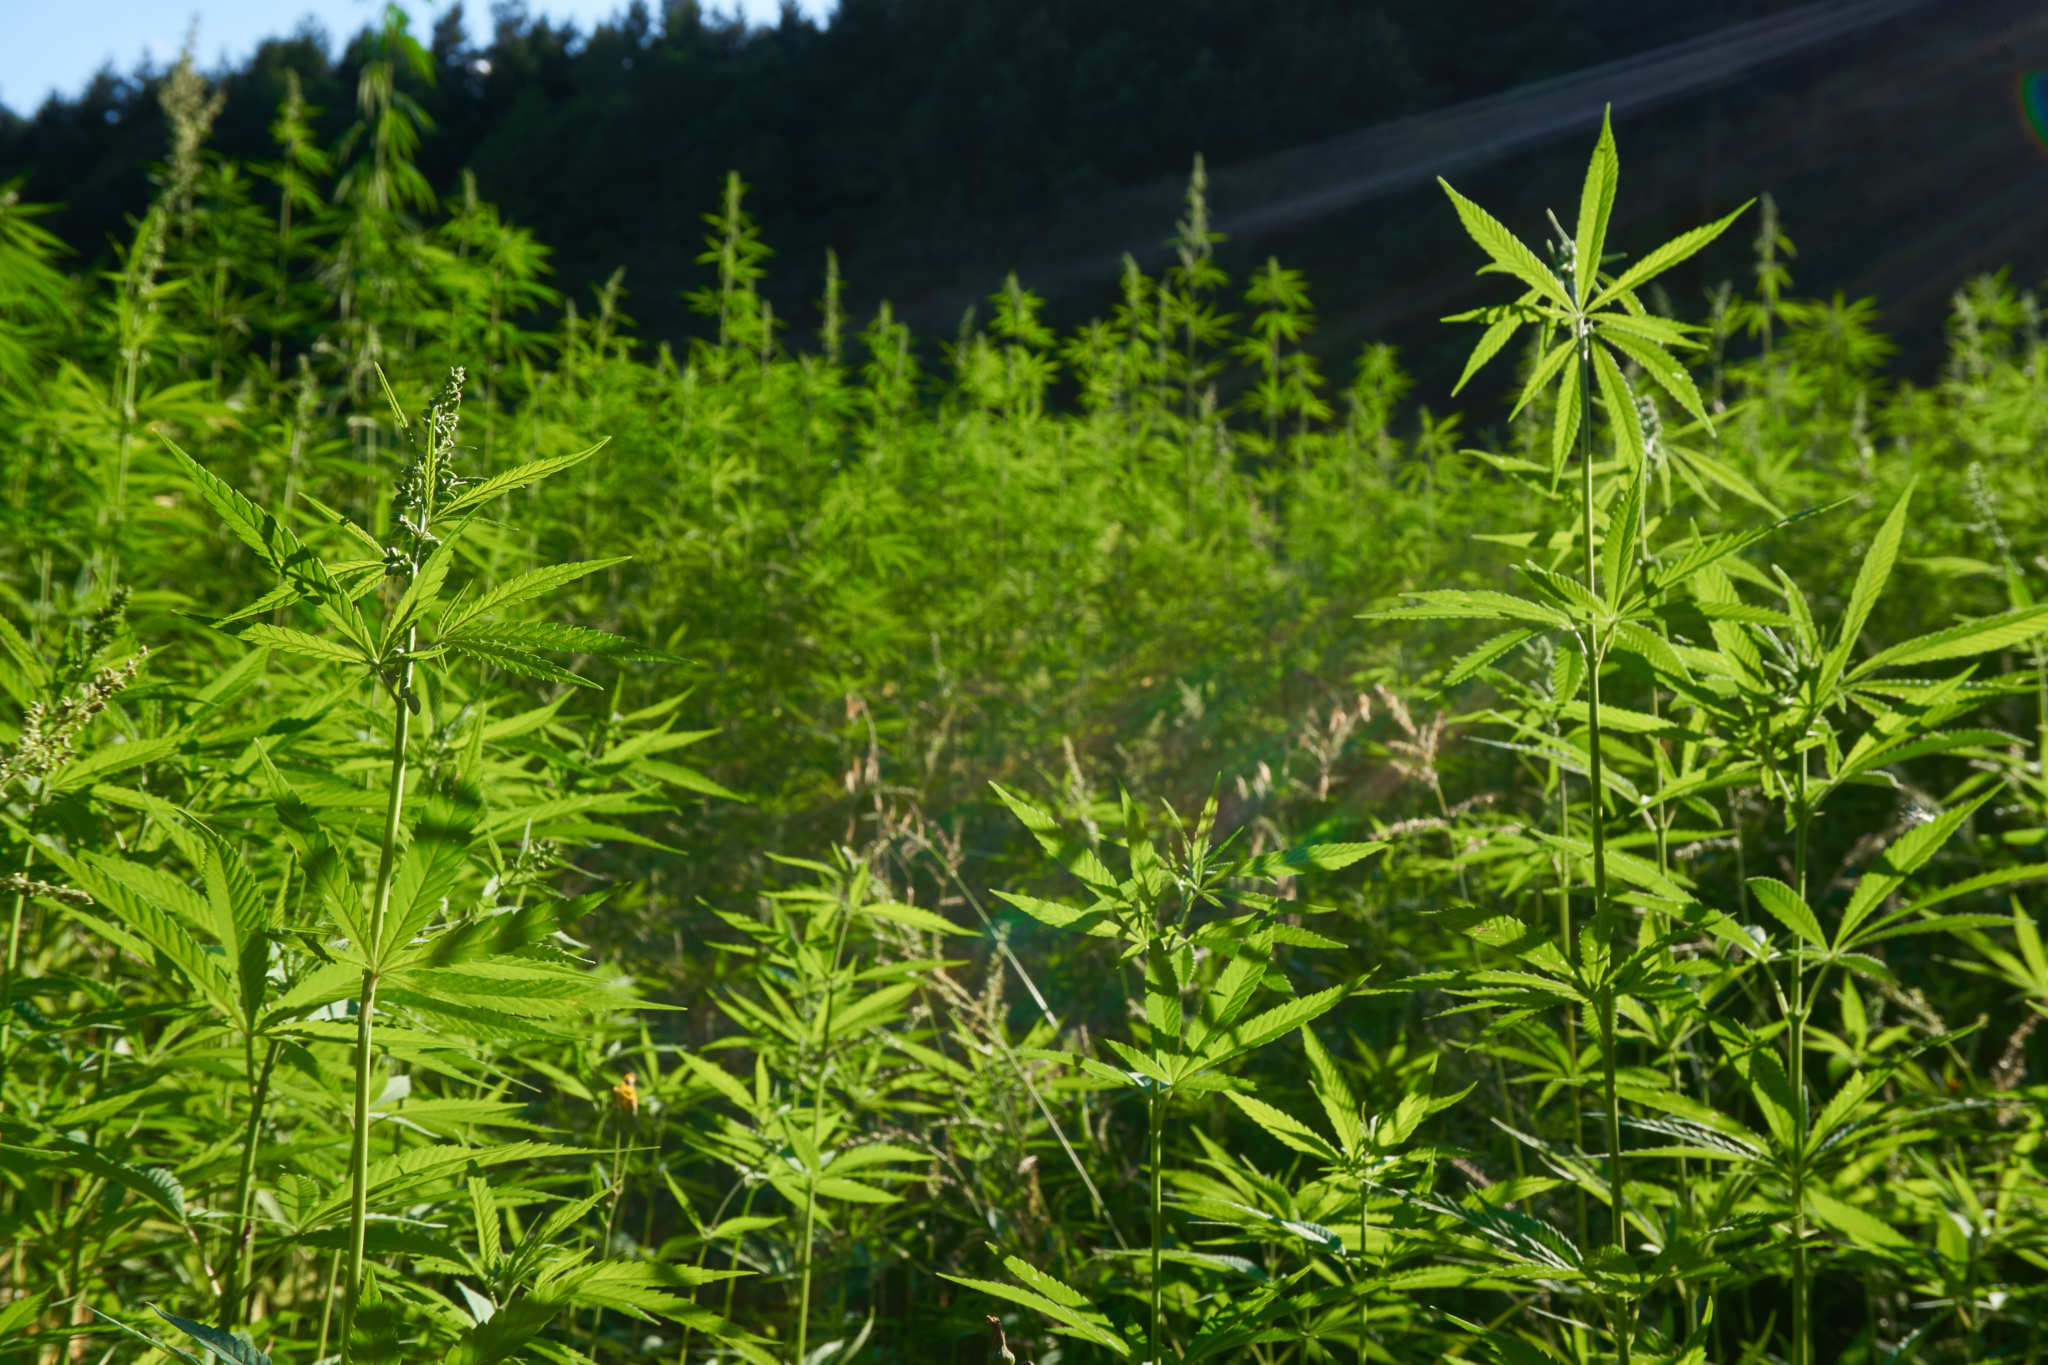 A densely packed hemp field with a forest in the background. It was illegal to grow hemp in the UK from 1928 to 1993, but advocates say strict regulations still stand in the way of a successful hemp industry.